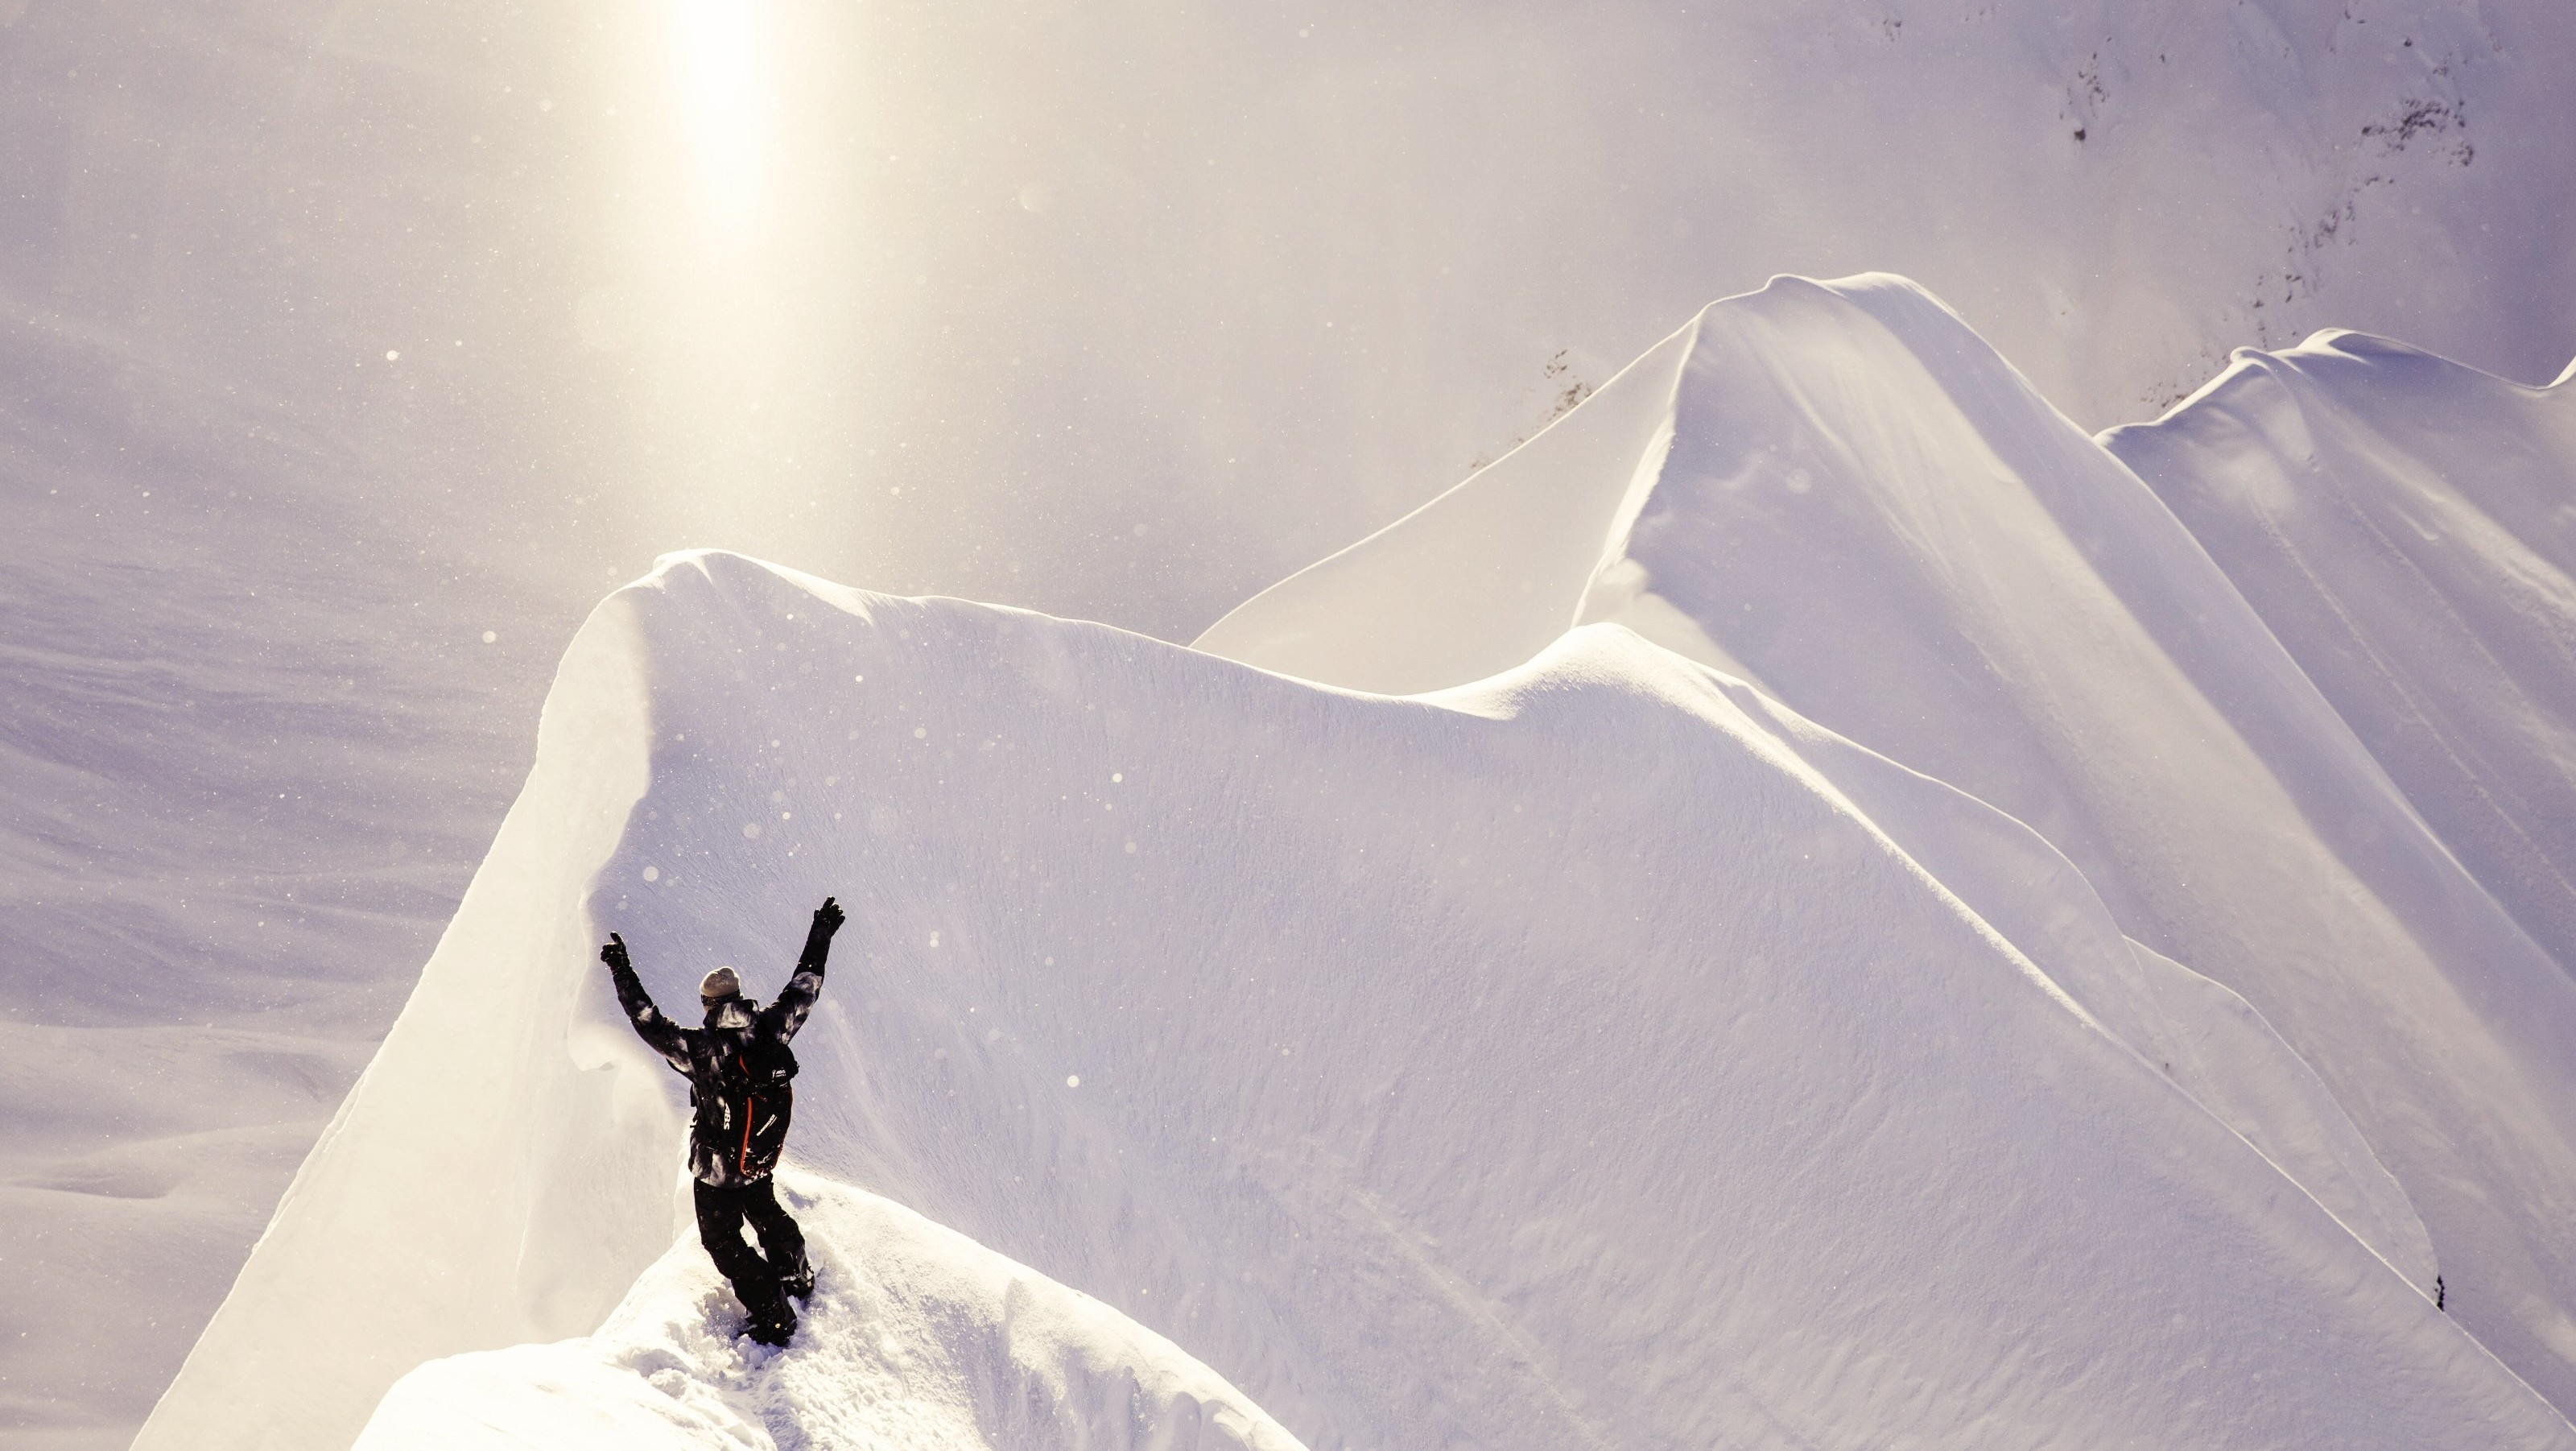 VICE Sports Q&A: Snowboarding Legend Travis Rice Talks About His New Movie 'The Fourth Phase'